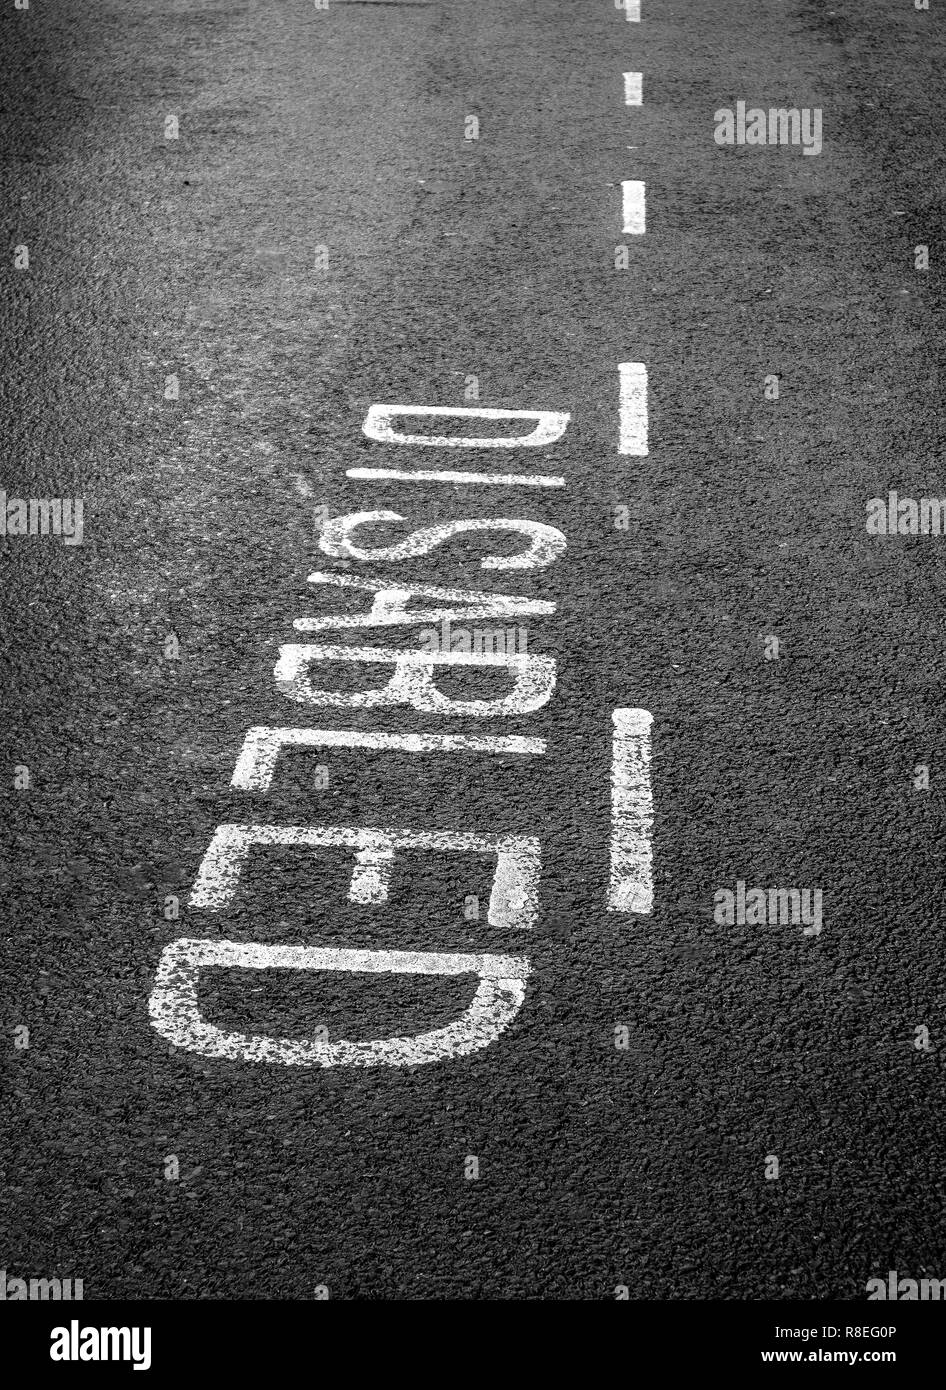 Disabled parking bay markings on a tarmac road - Stock Image